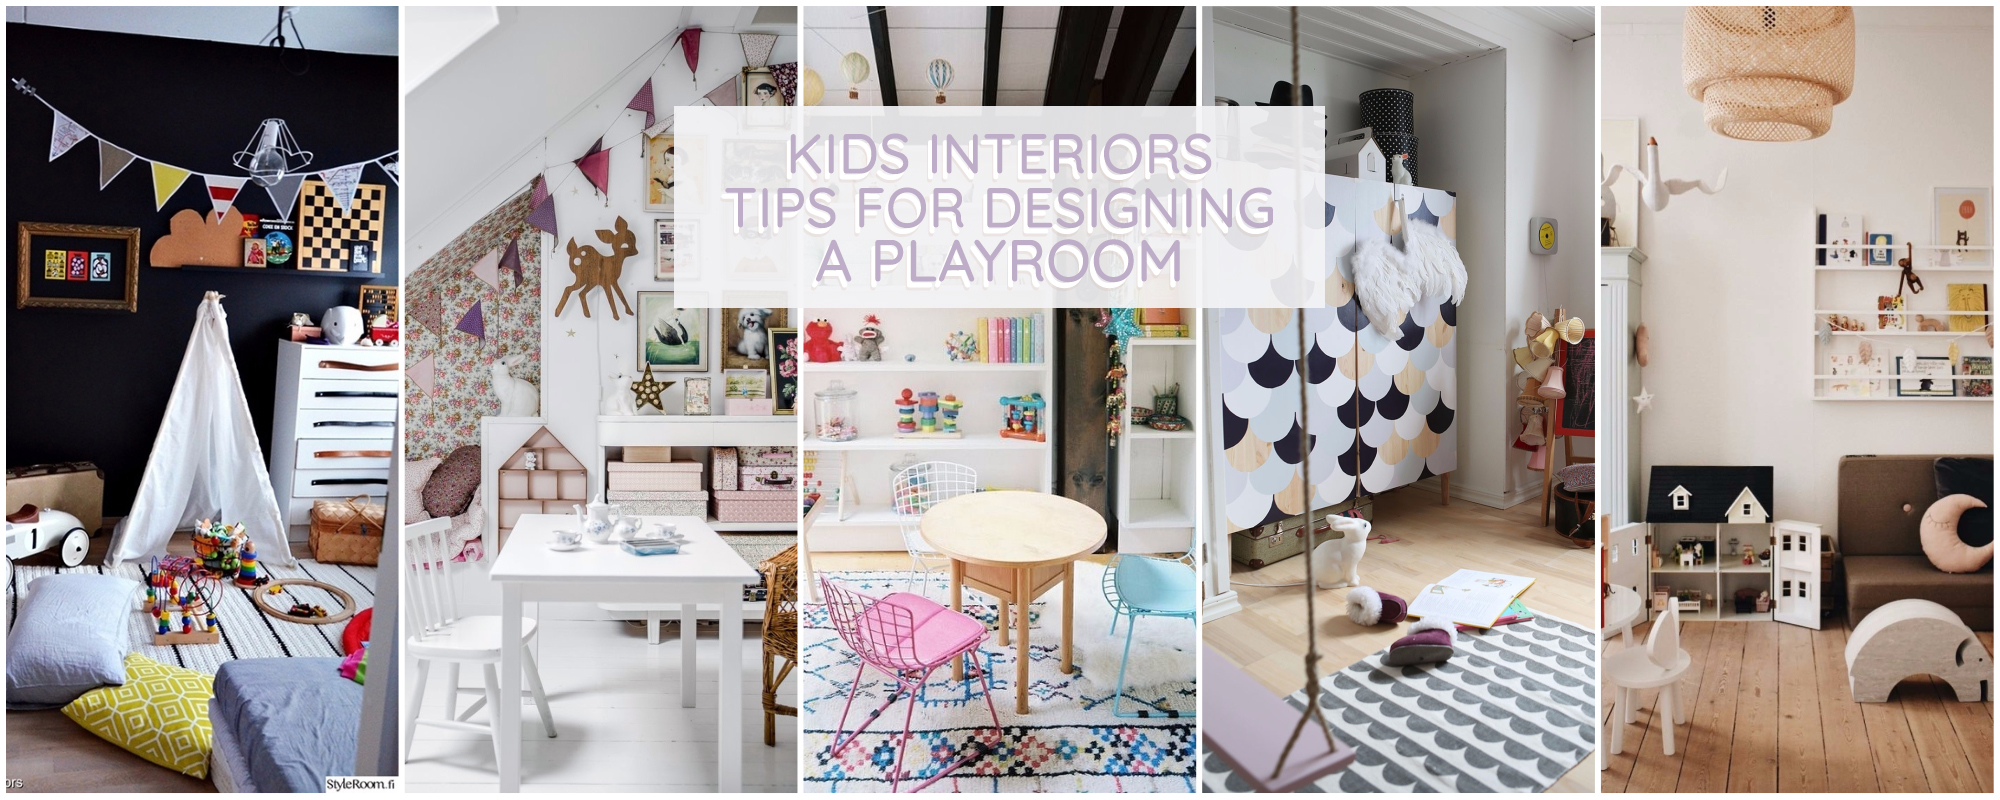 Iloveplaytime Kids Interiors Tips For Designing A Playroom